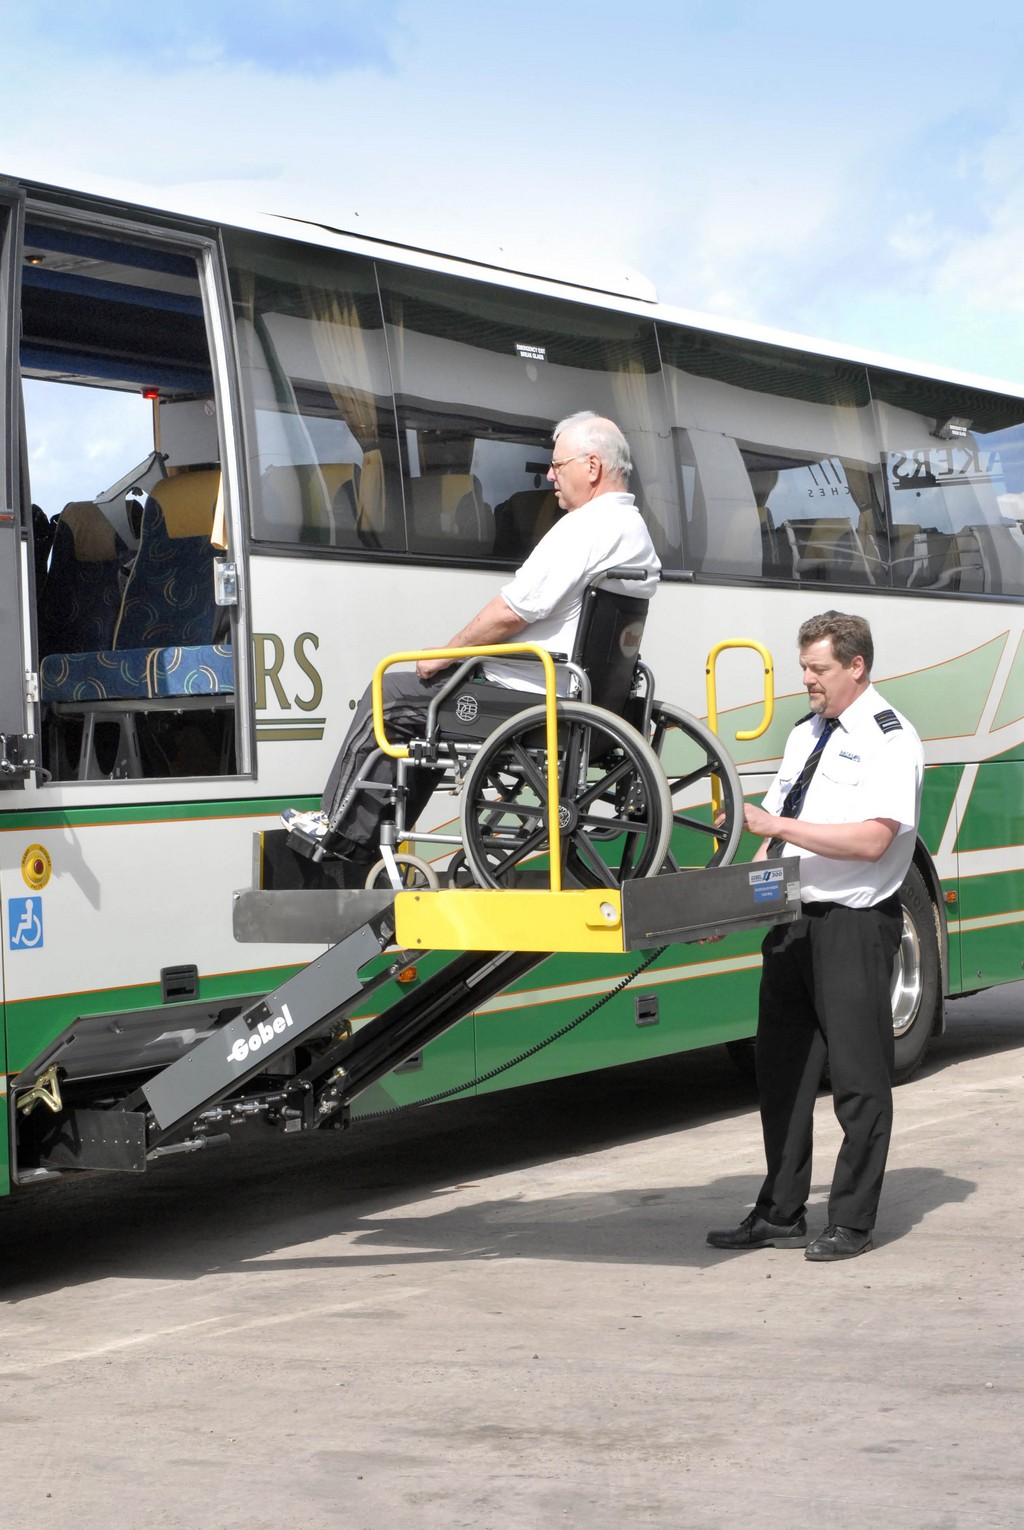 lift for bed for wheelchair person, wheel chair lifts for cars in ohio, motorhome wheelchair lift, automobile wheelchair lifts